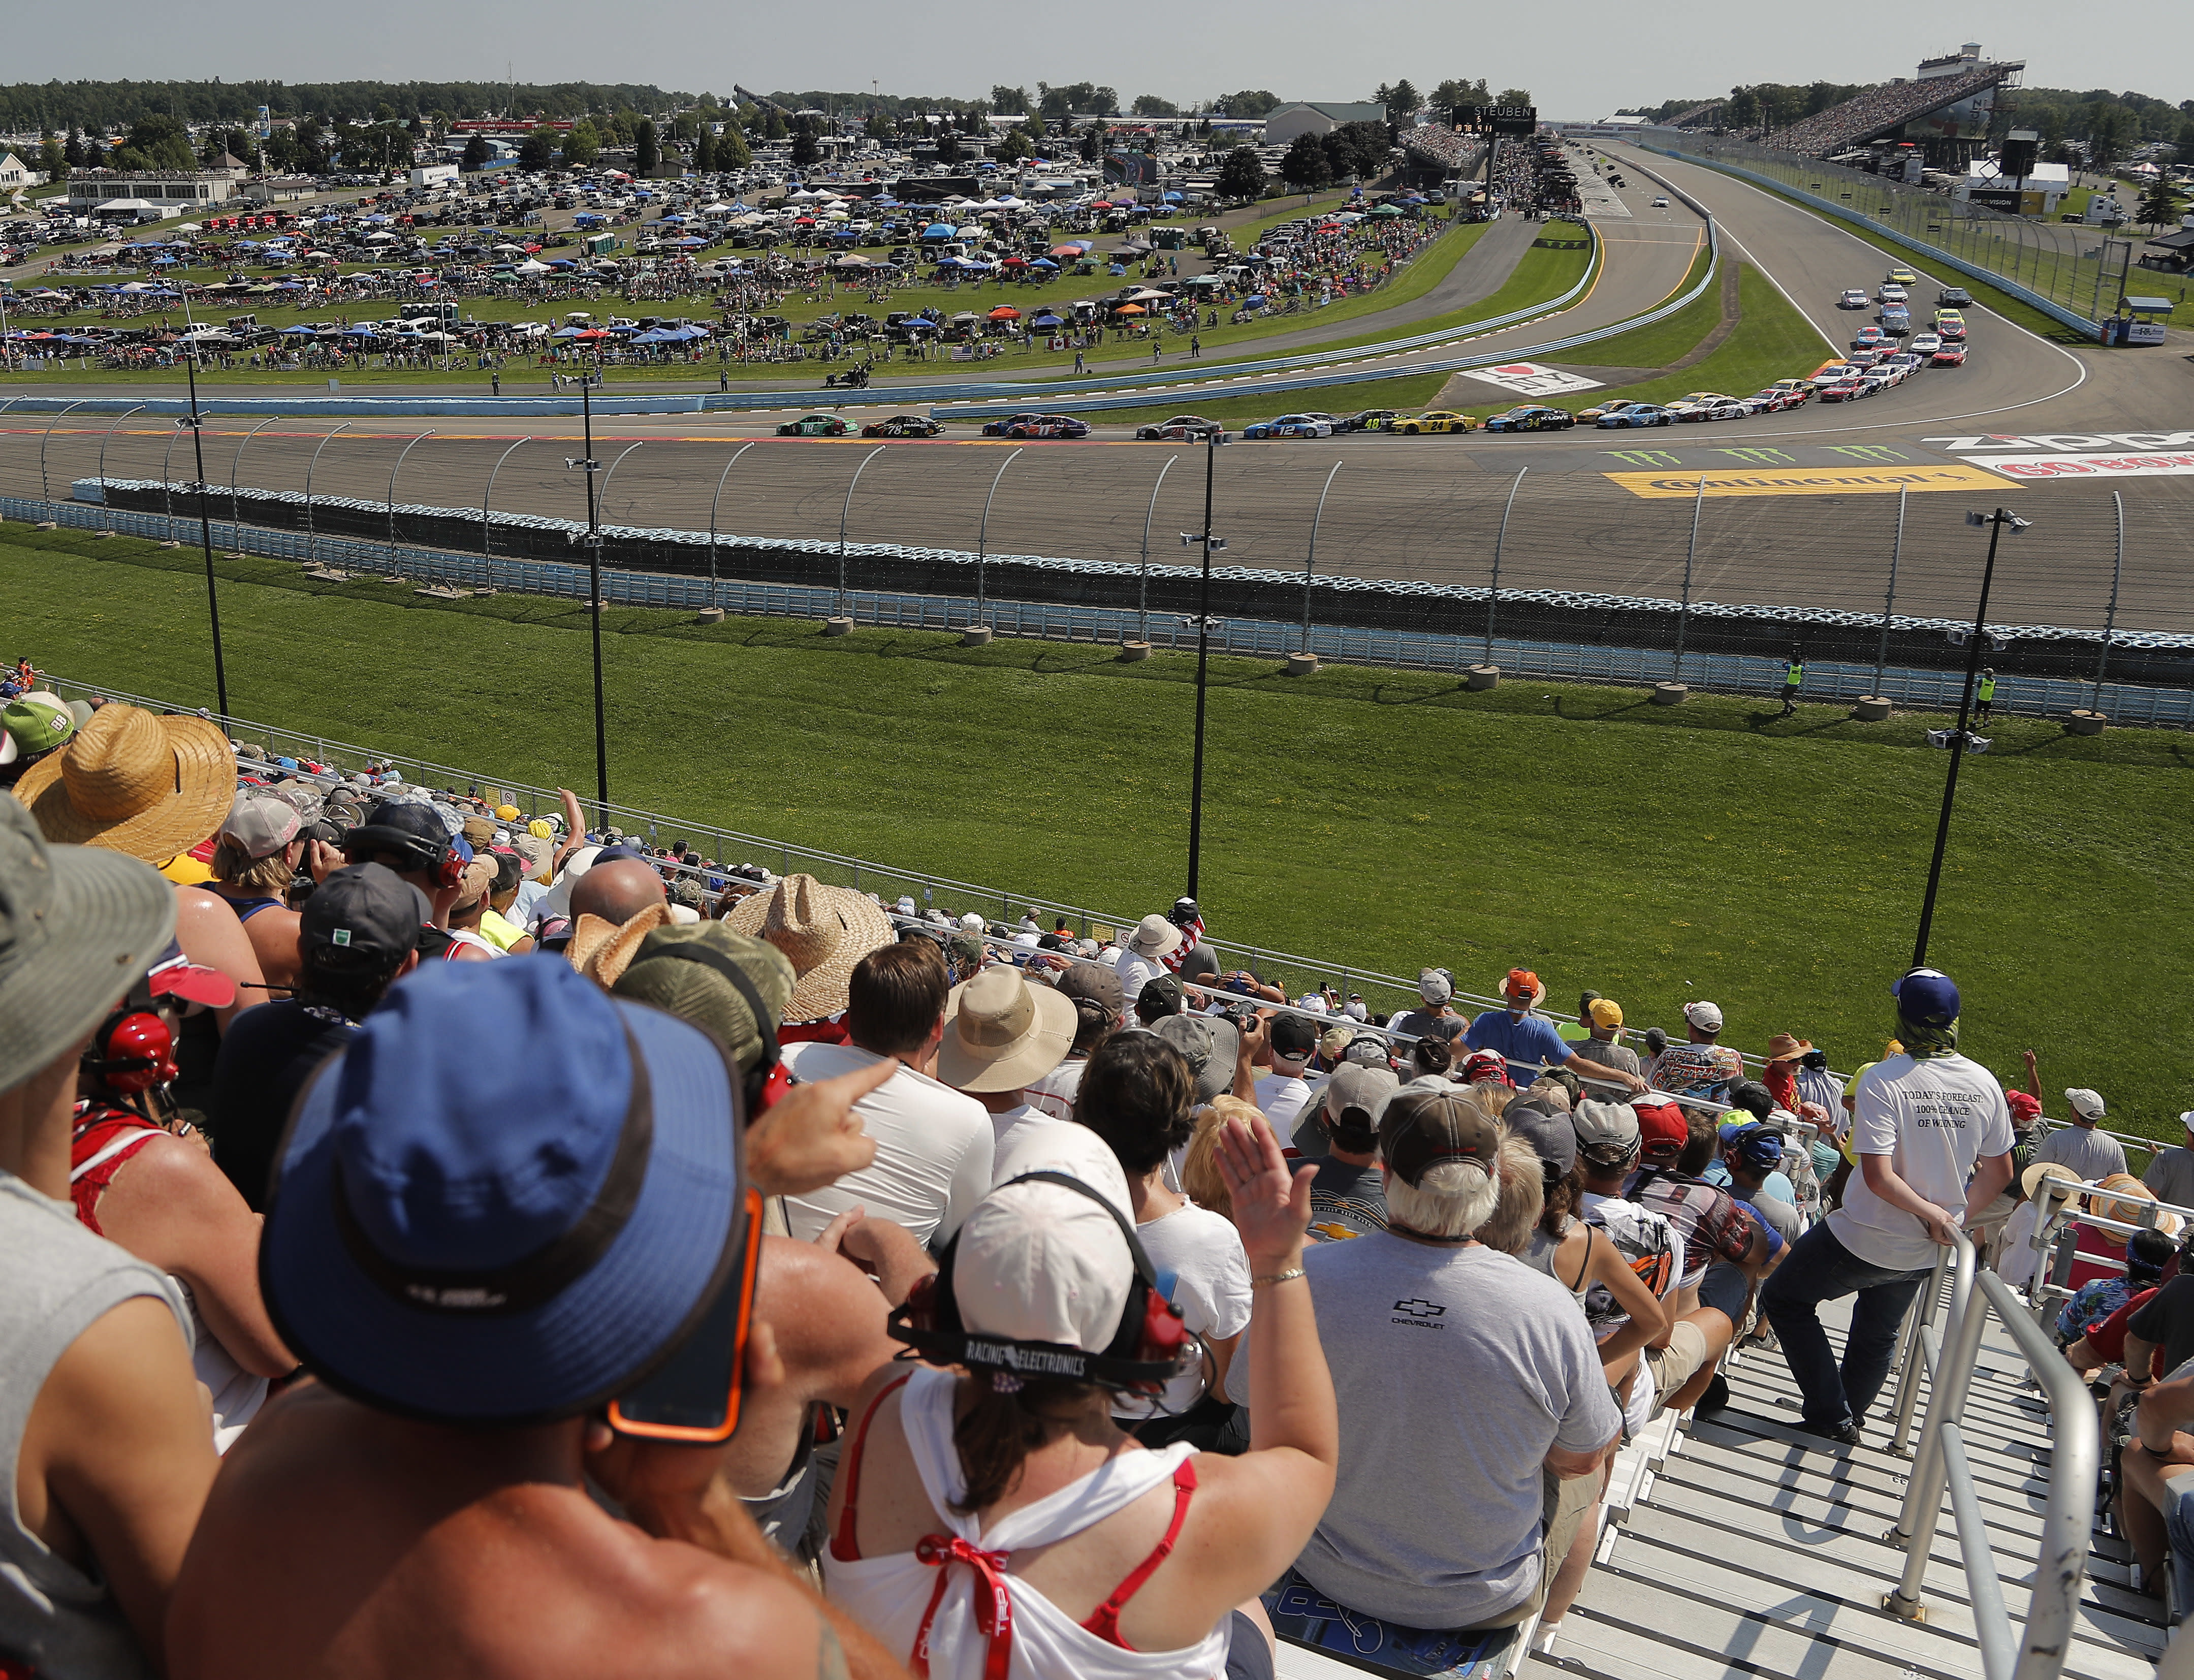 """FILE - In this Aug. 5, 2018, file photo, spectators watch as drivers come around Turn 1 during a restart after a caution during a NASCAR Cup Series auto race in Watkins Glen, N.Y. Three months after its opening day was canceled by the coronavirus pandemic, Watkins Glen International is hosting car clubs again as NASCAR weekend looms in mid-August. """"Everybody is excited about getting back in the saddle. I know we are,"""" track president Michael Printup said. (AP Photo/Julie Jacobson, File)"""